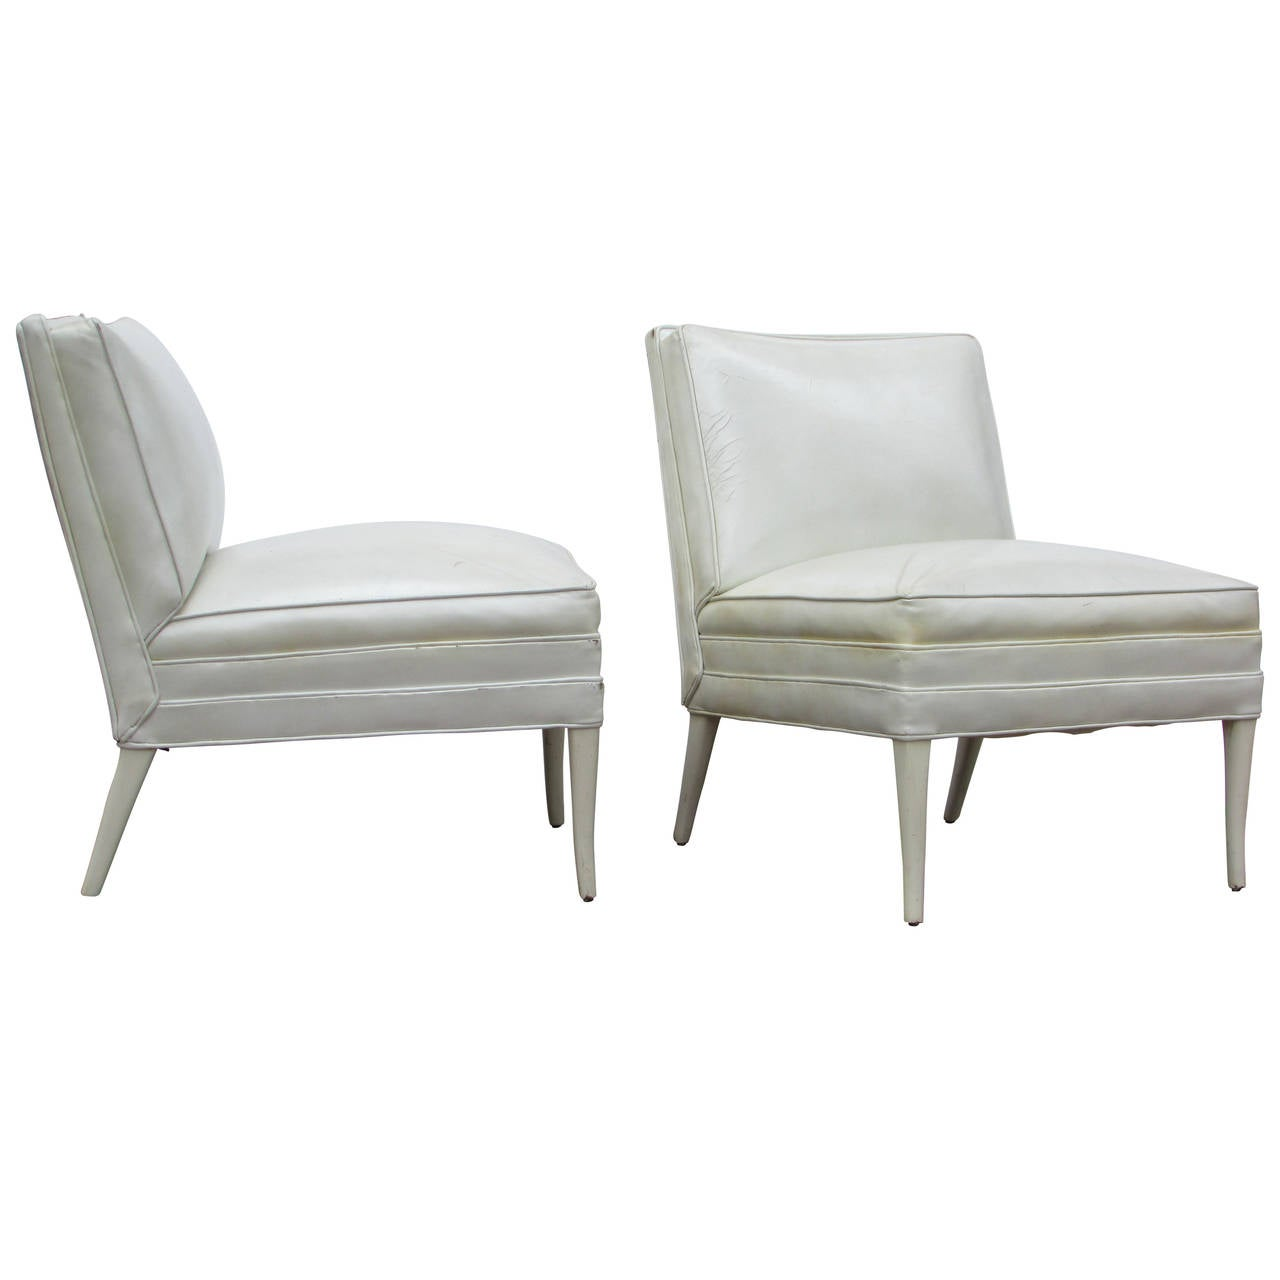 White Club Chair White Leather Lounge Chairs Tommi Parzinger At 1stdibs